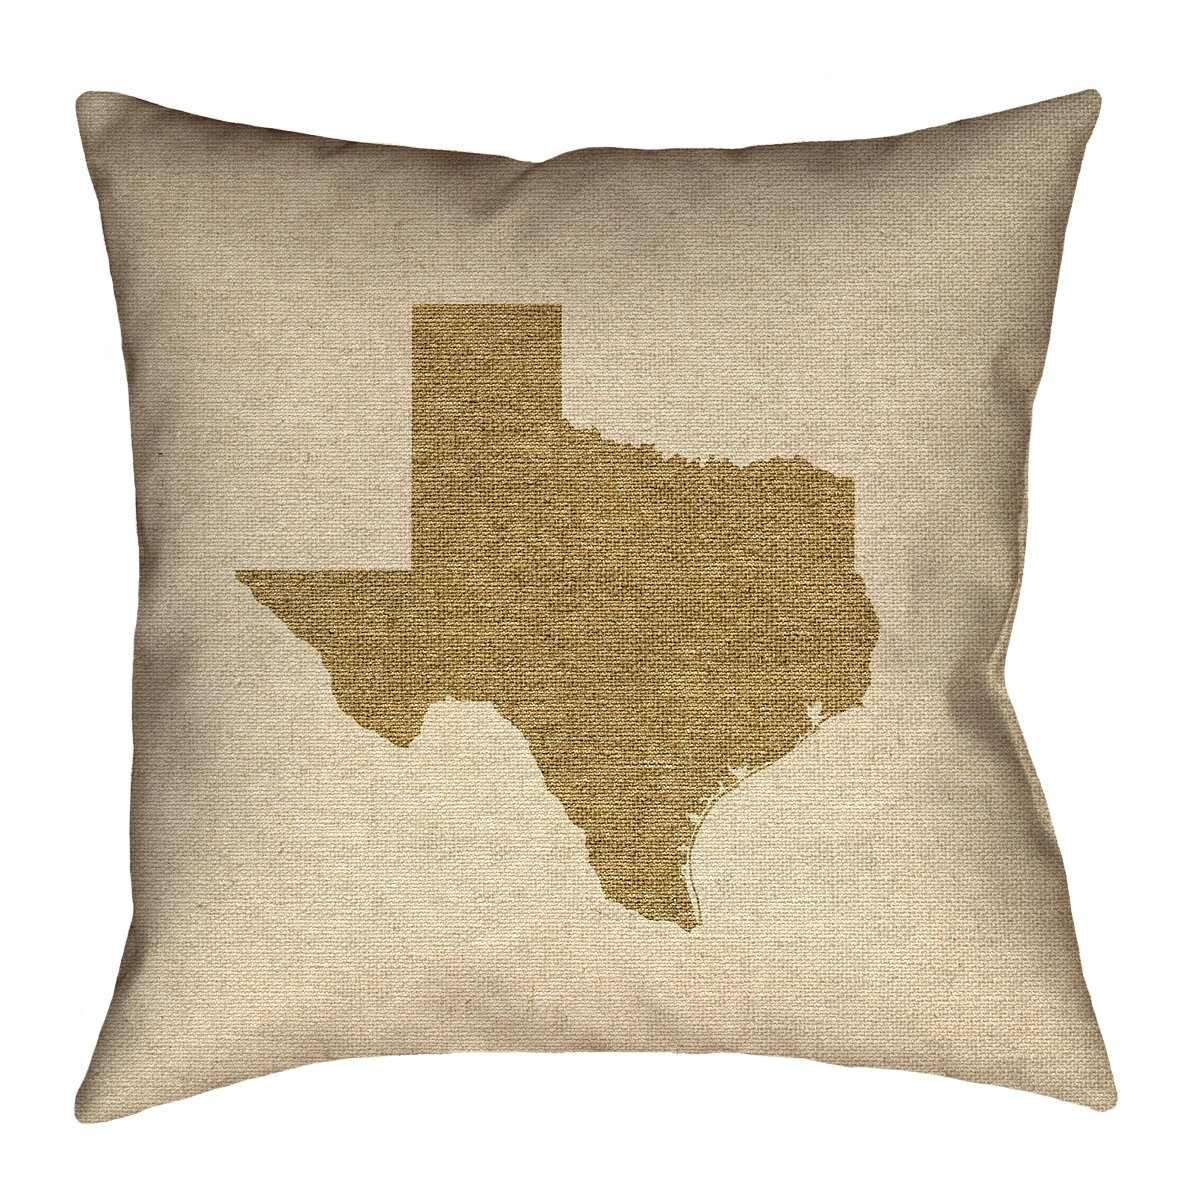 ArtVerse Katelyn Smith 26' x 26' Poly Twill Double Sided Print with Concealed Zipper & Insert Texas Canvas Pillow